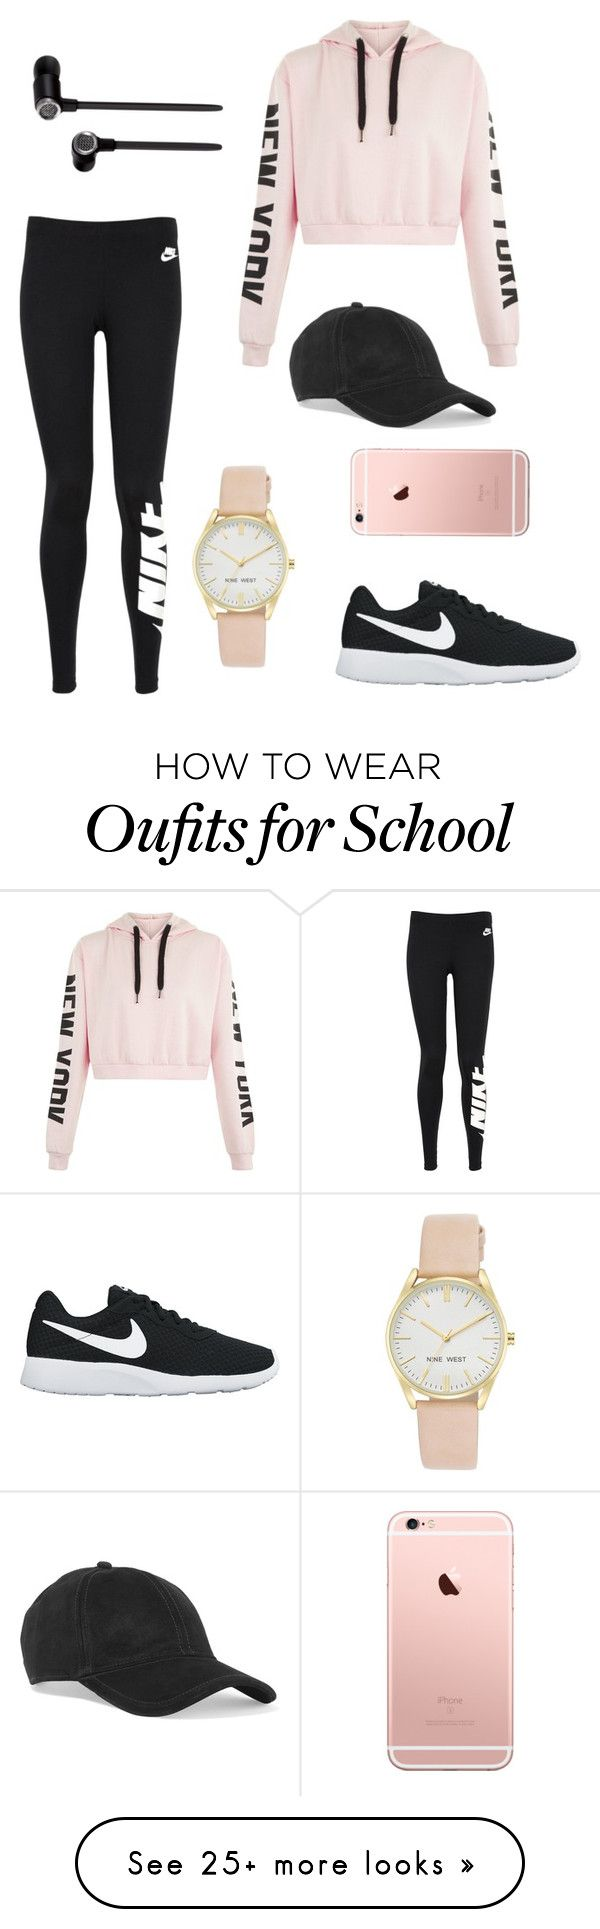 """""""School Outfits"""" by maia-hd on Polyvore featuring NIKE, Master & Dynamic, Nine West and rag & bone"""